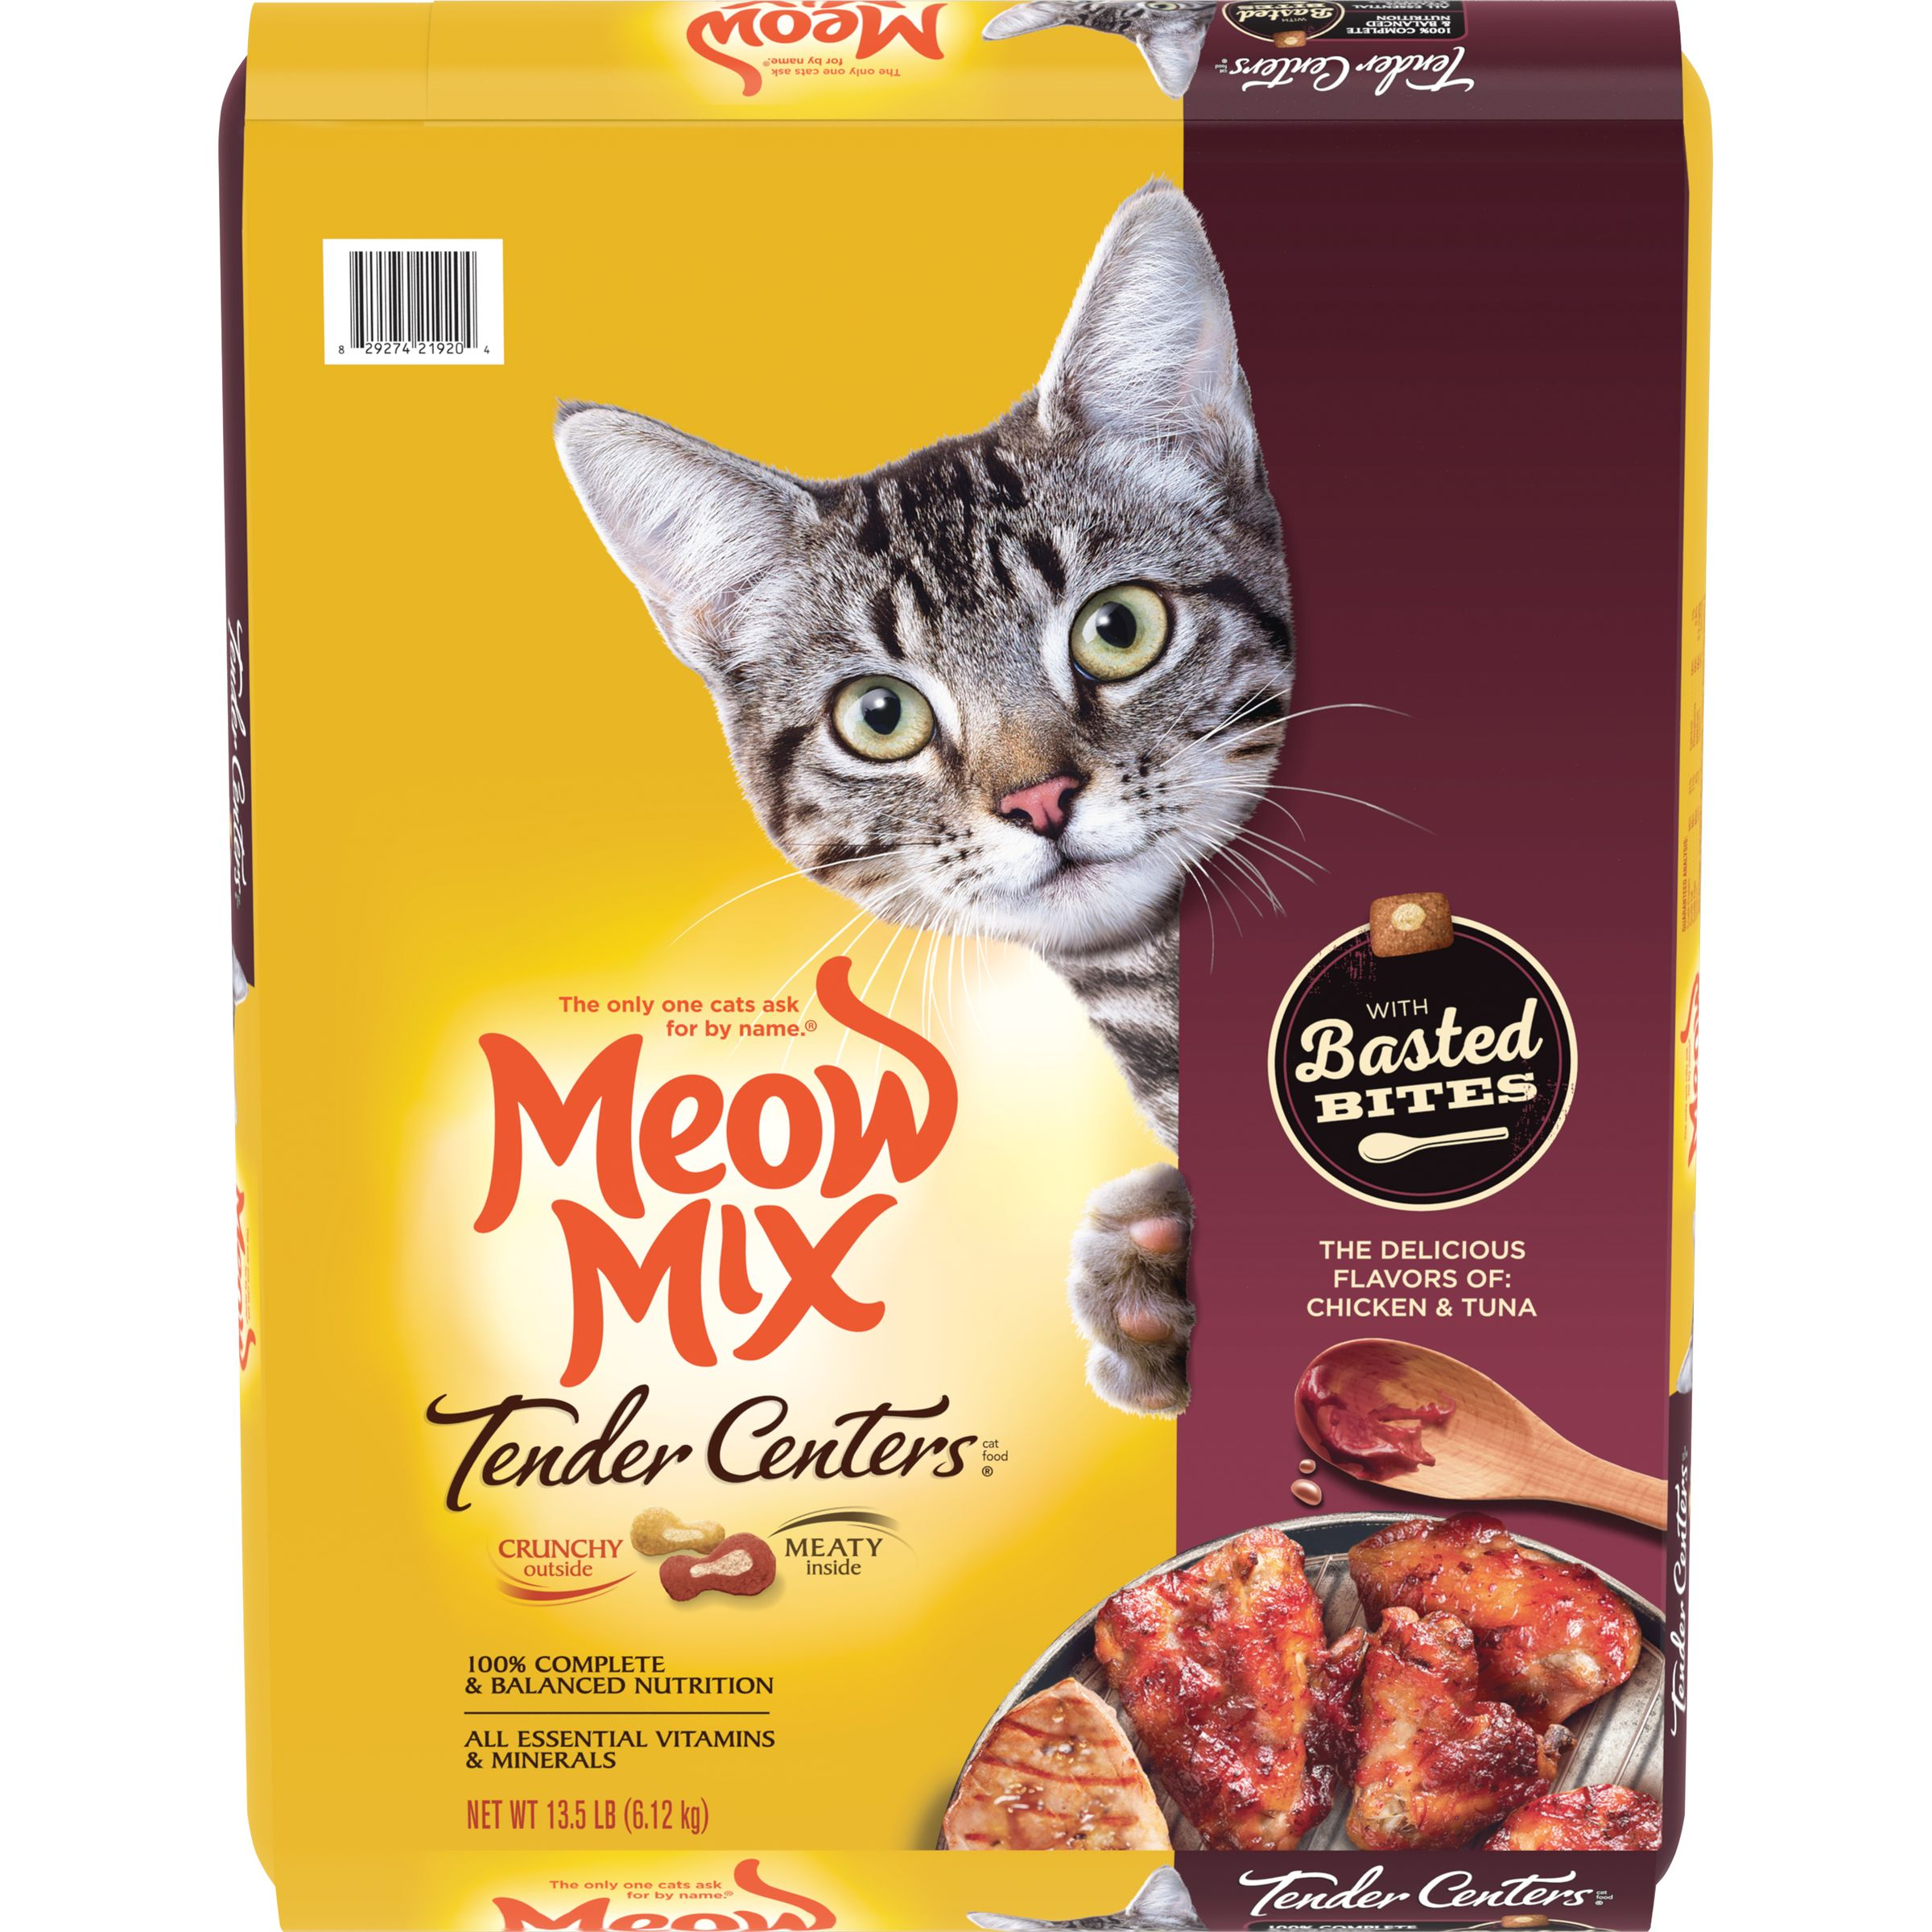 Meow Mix Tender Centers With Basted Bites En And Tuna Flavored Dry Cat Food 13 5 Pound